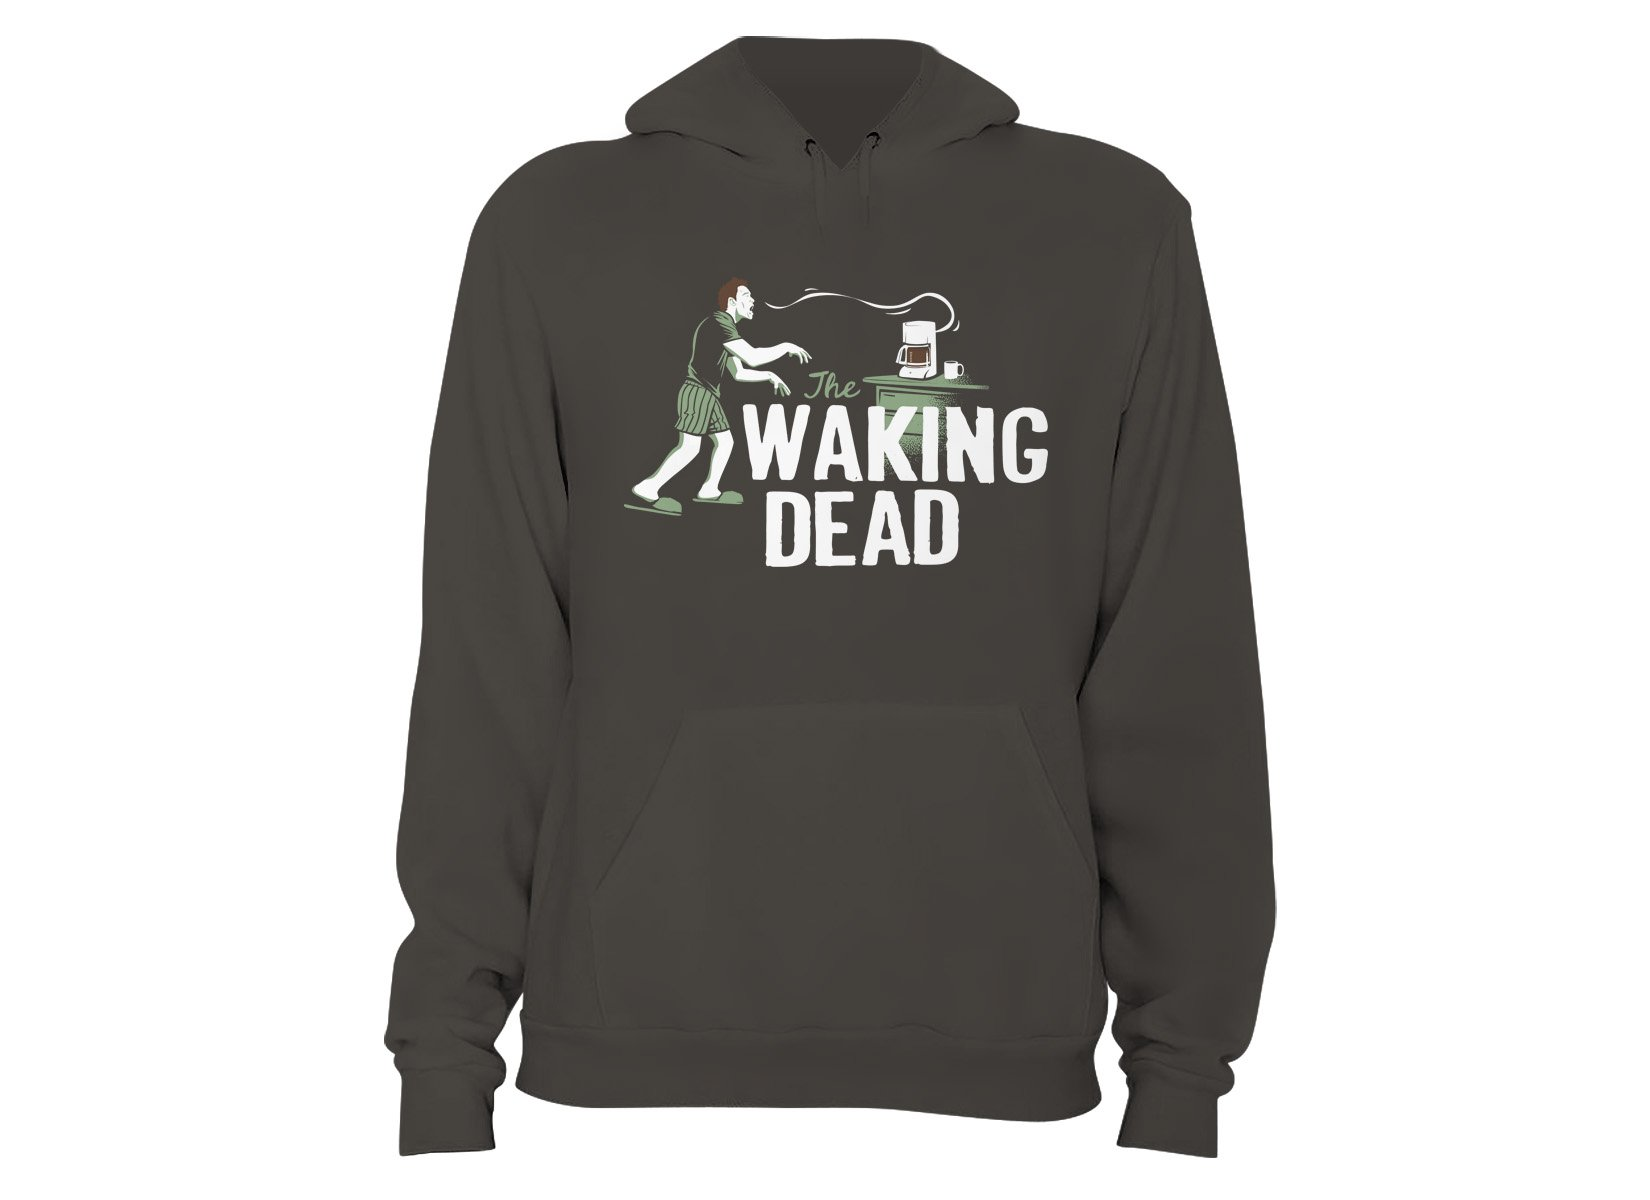 The Waking Dead on Hoodie